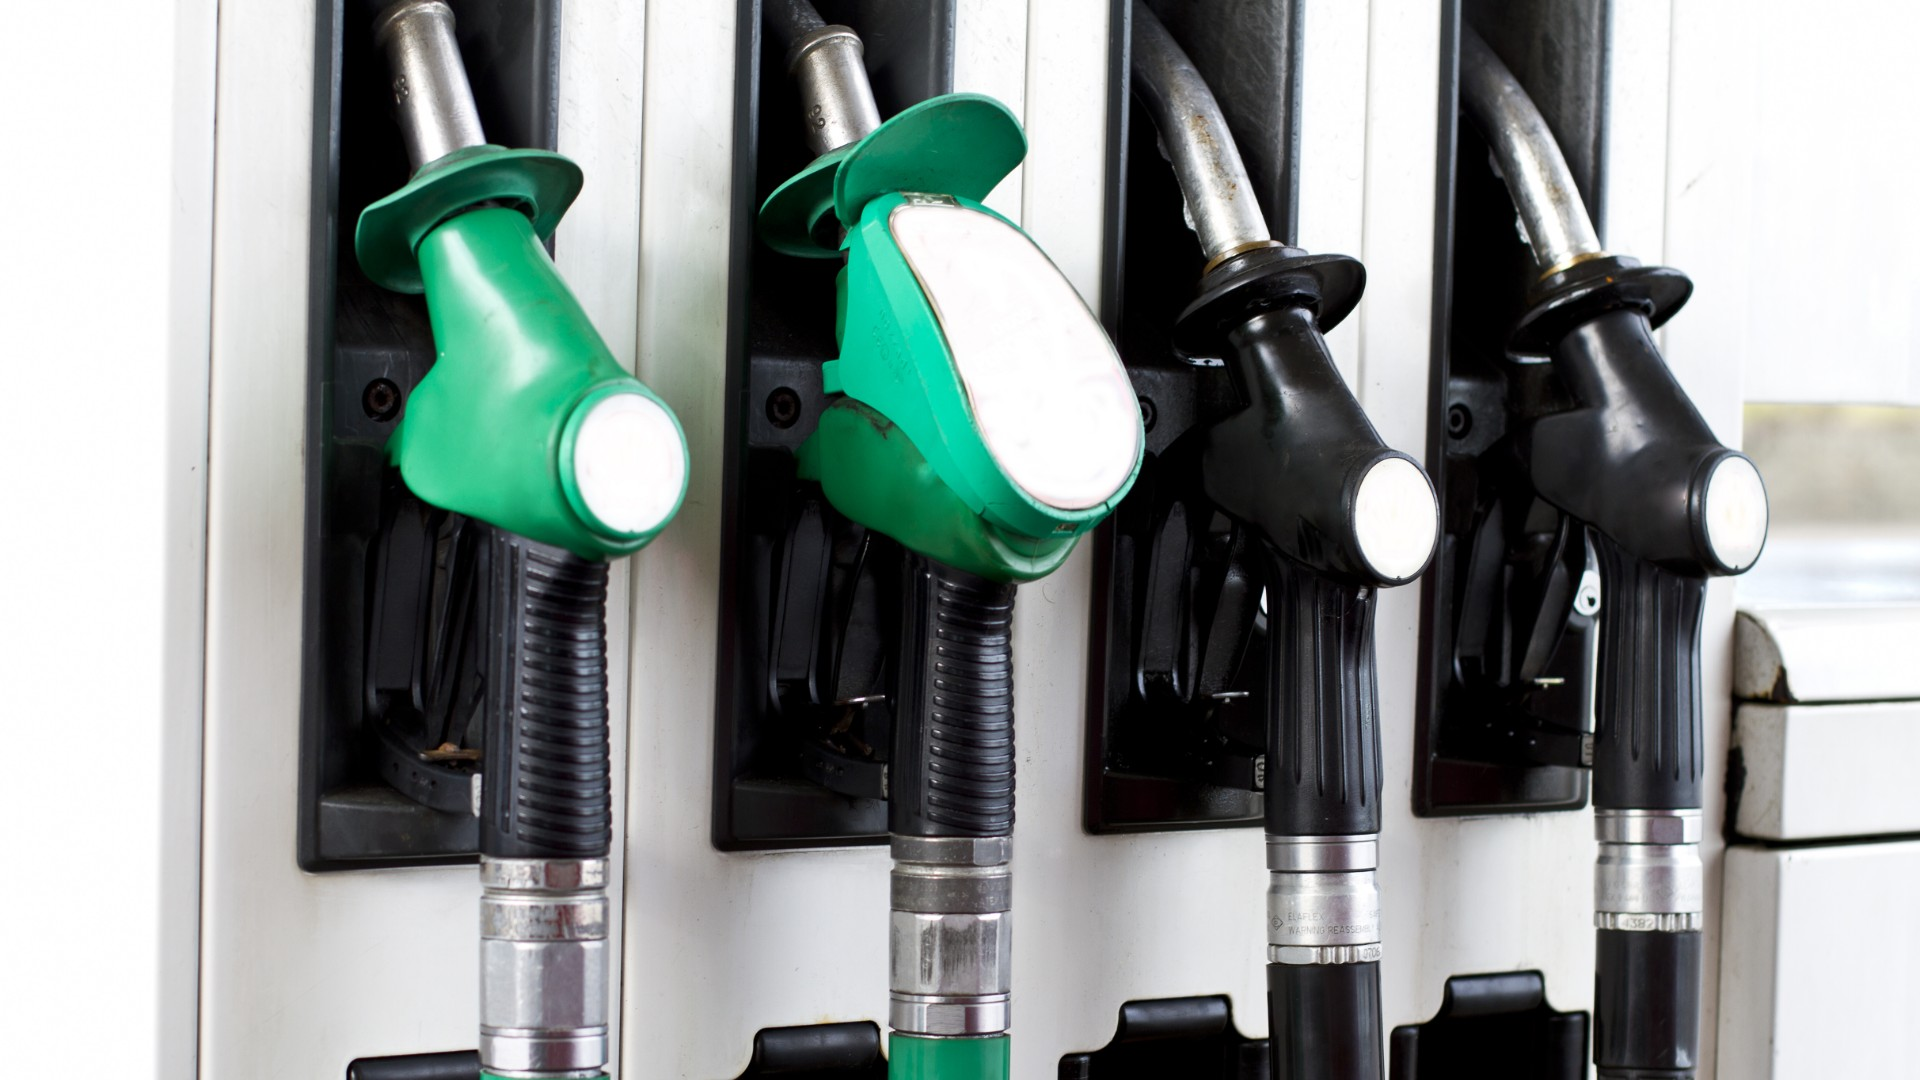 Finding the cheapest petrol and diesel